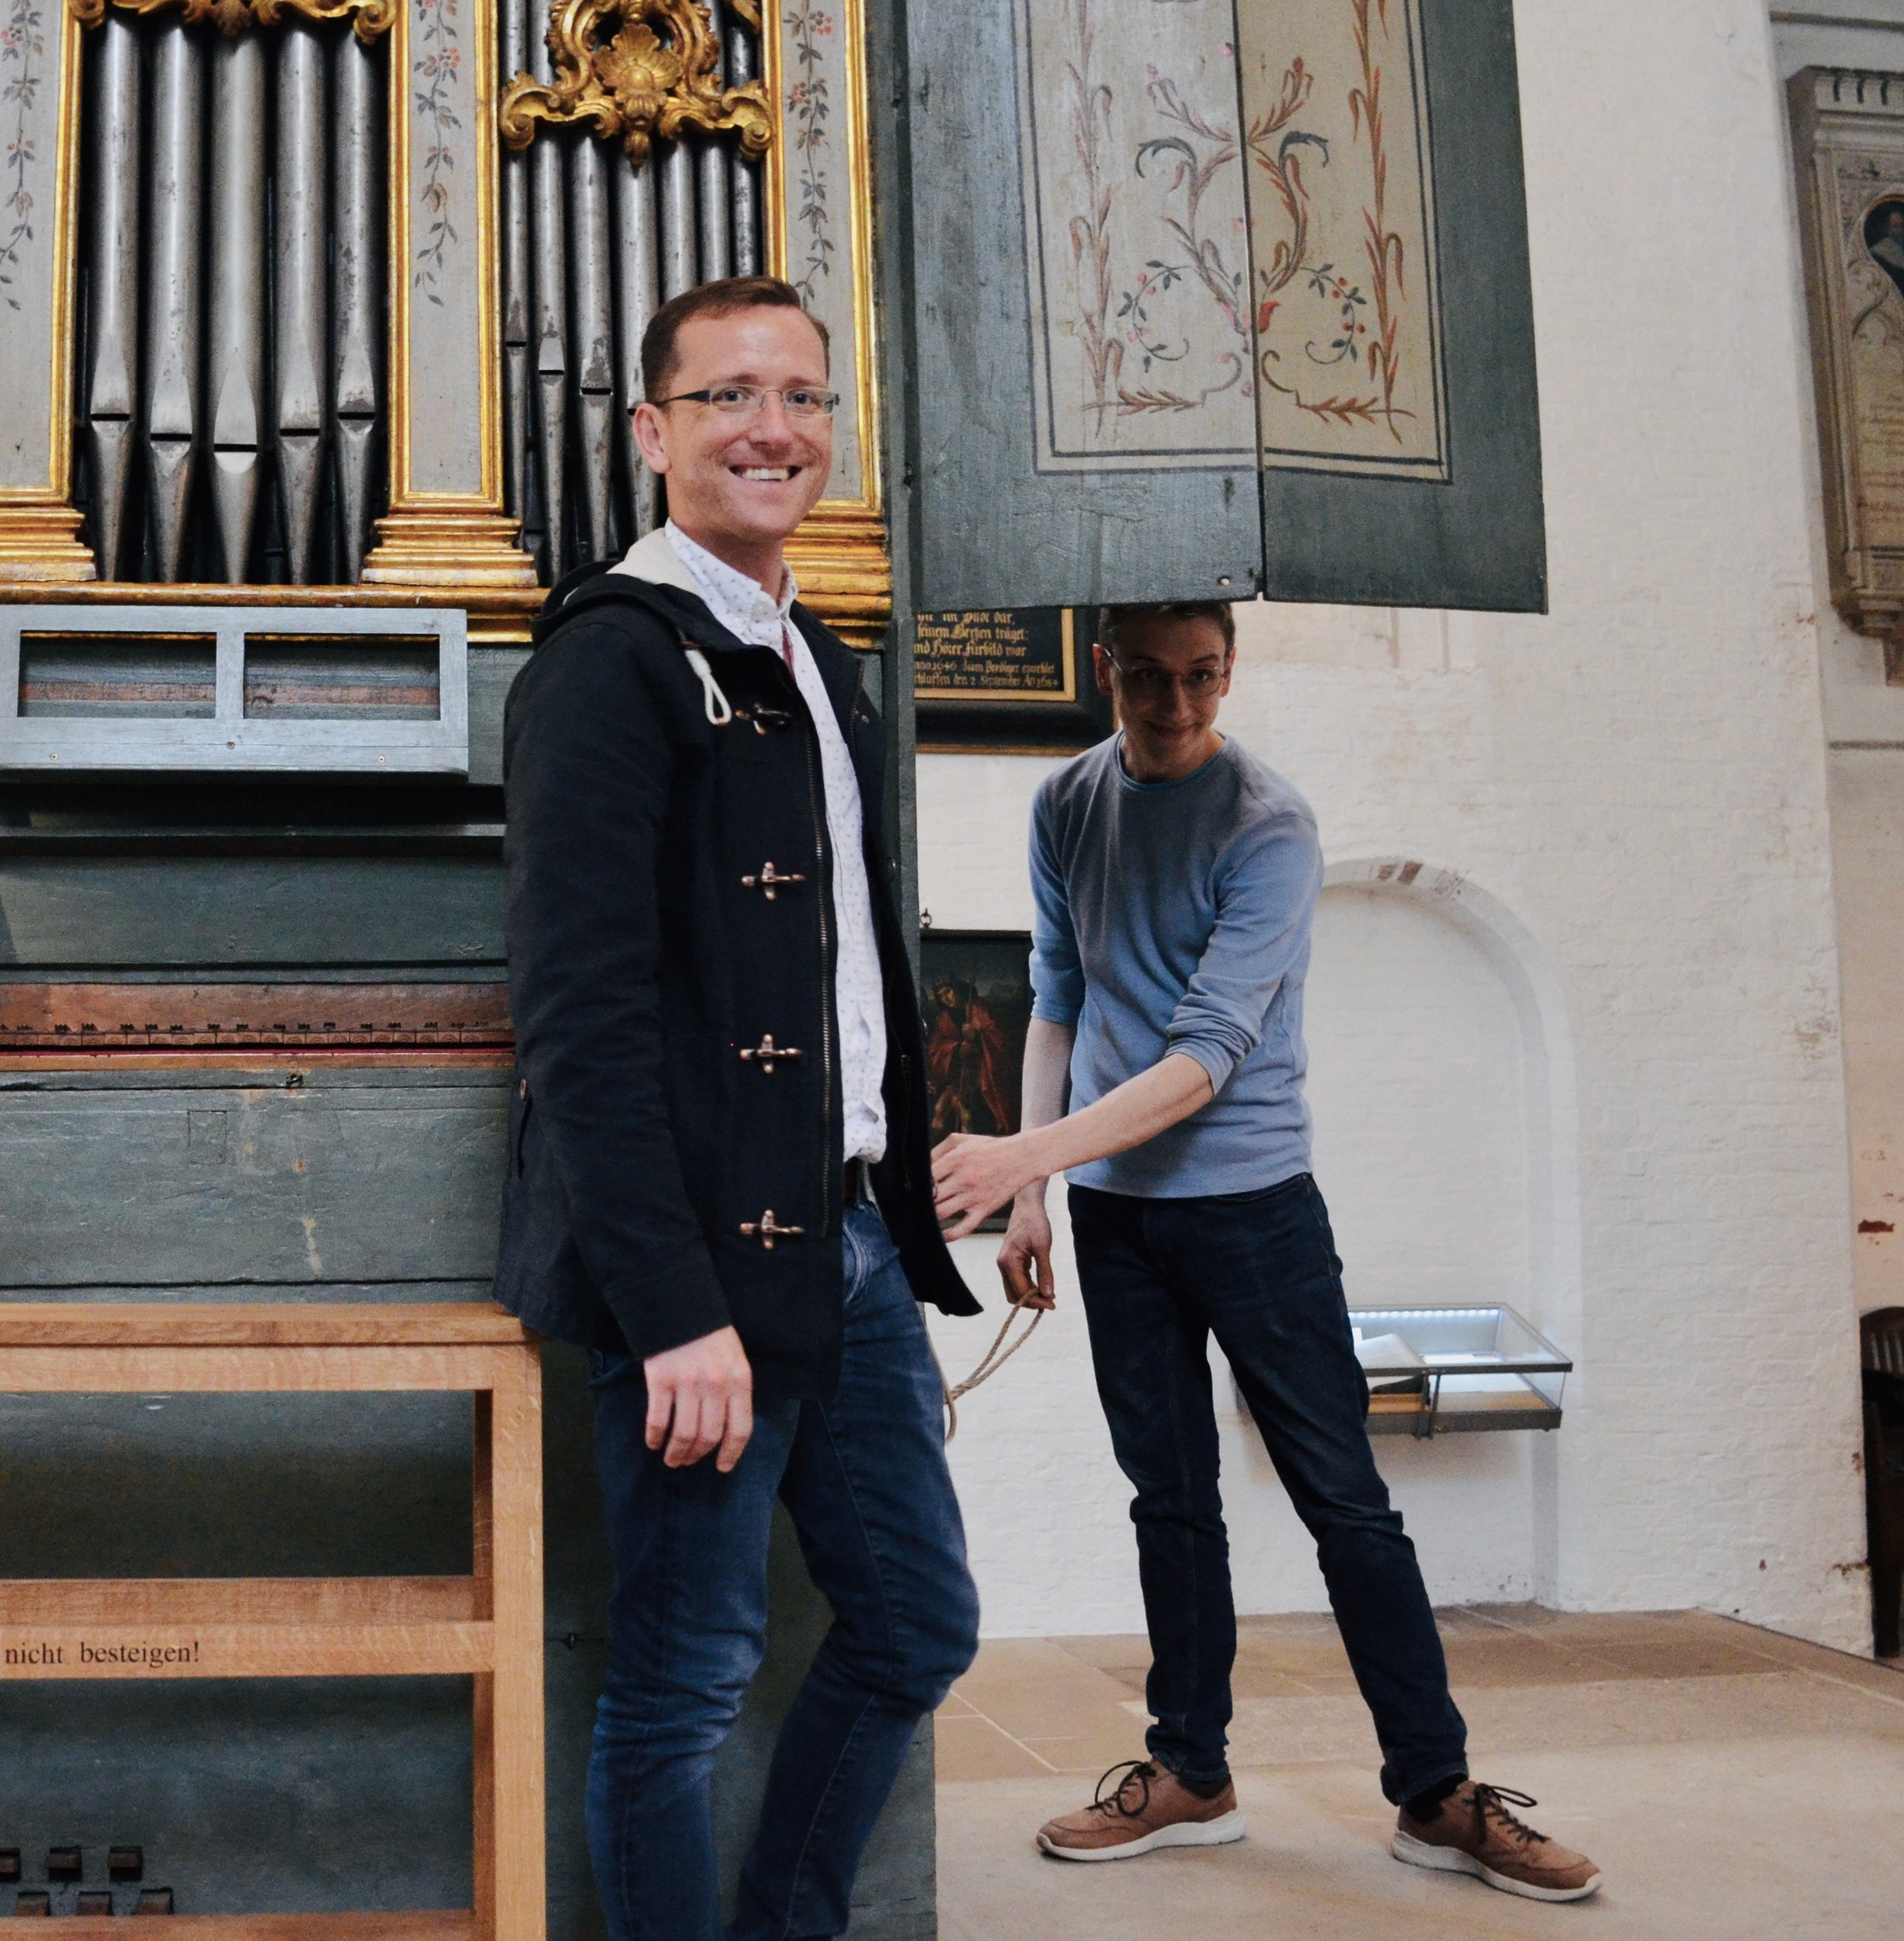 Christian Lane and Alex Ross at the 1777 Italian Baroque organ in Lübeck Dom.